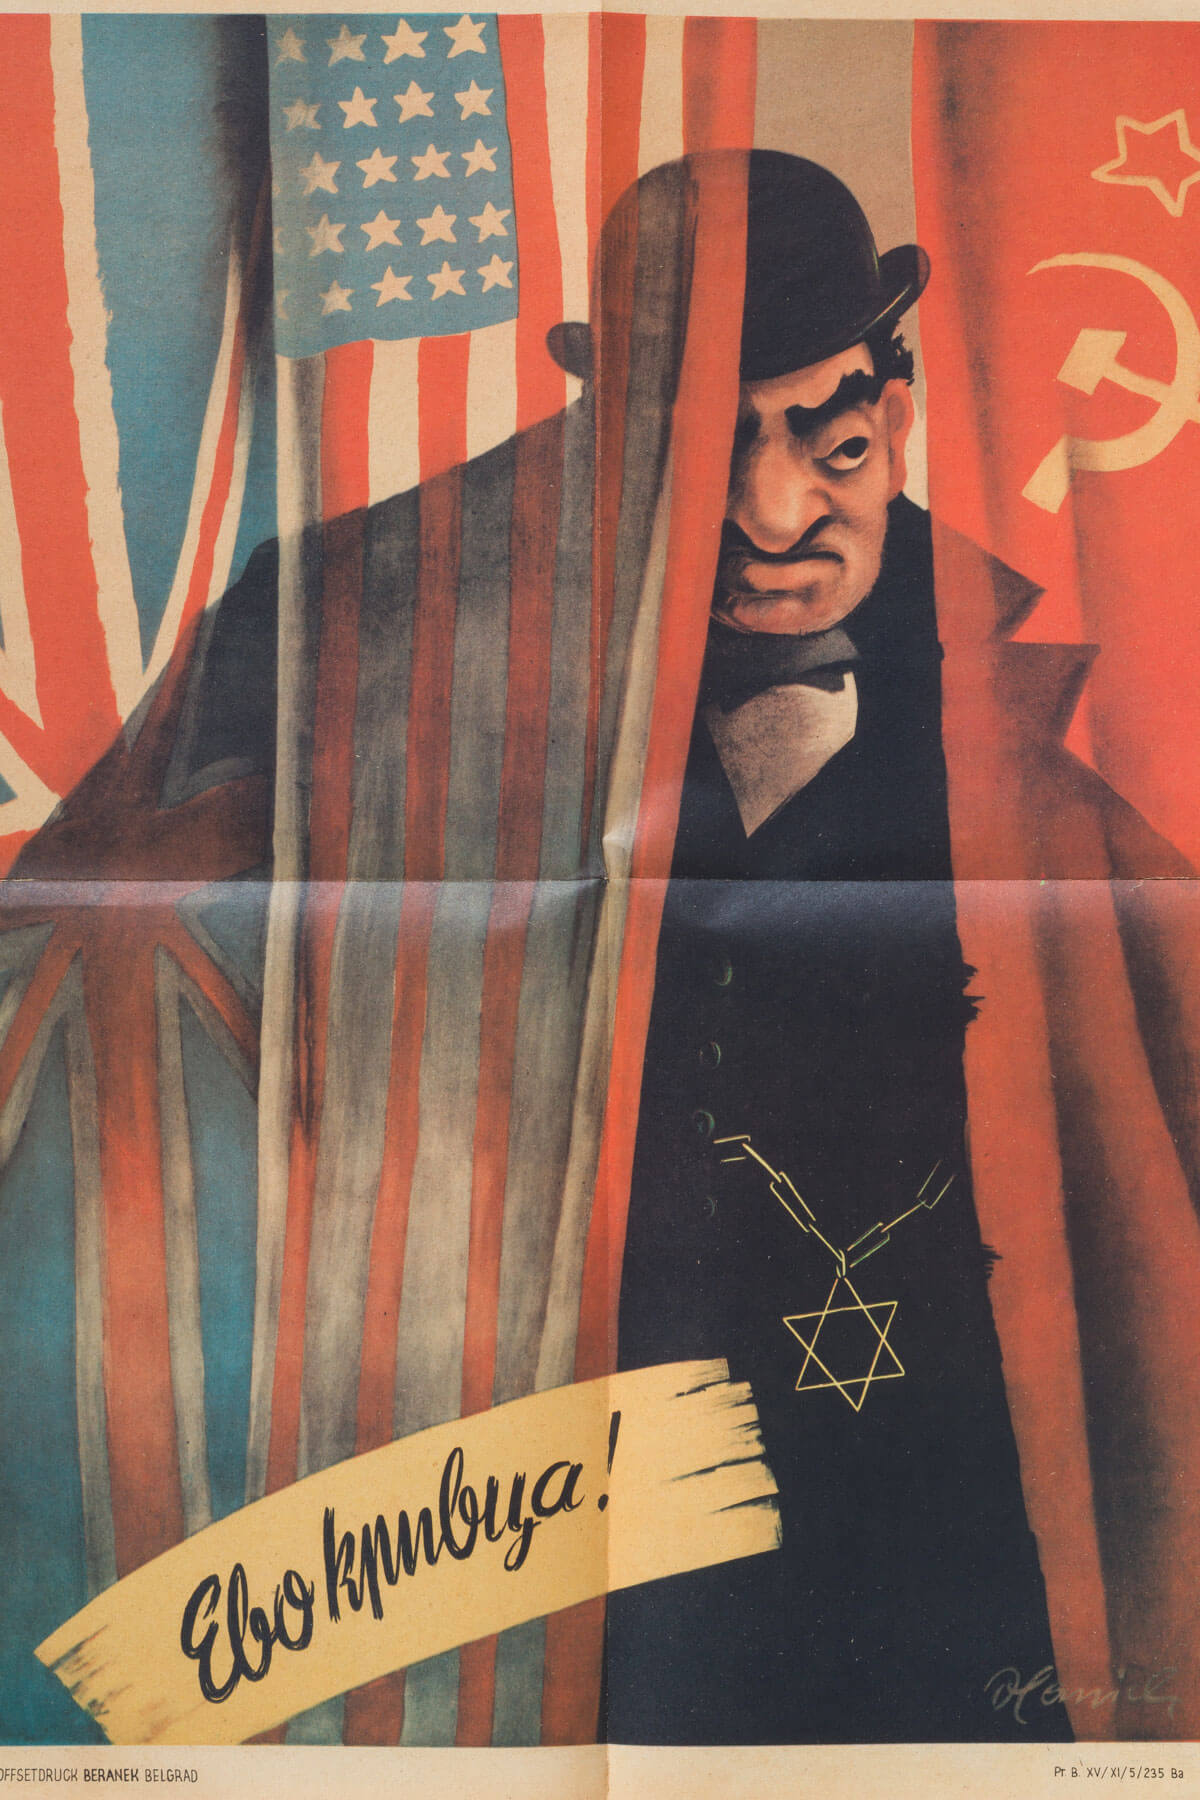 179. An Anti-Semitic Poster Published by the Yugoslav Nazi Party in Belgrade, Serbia